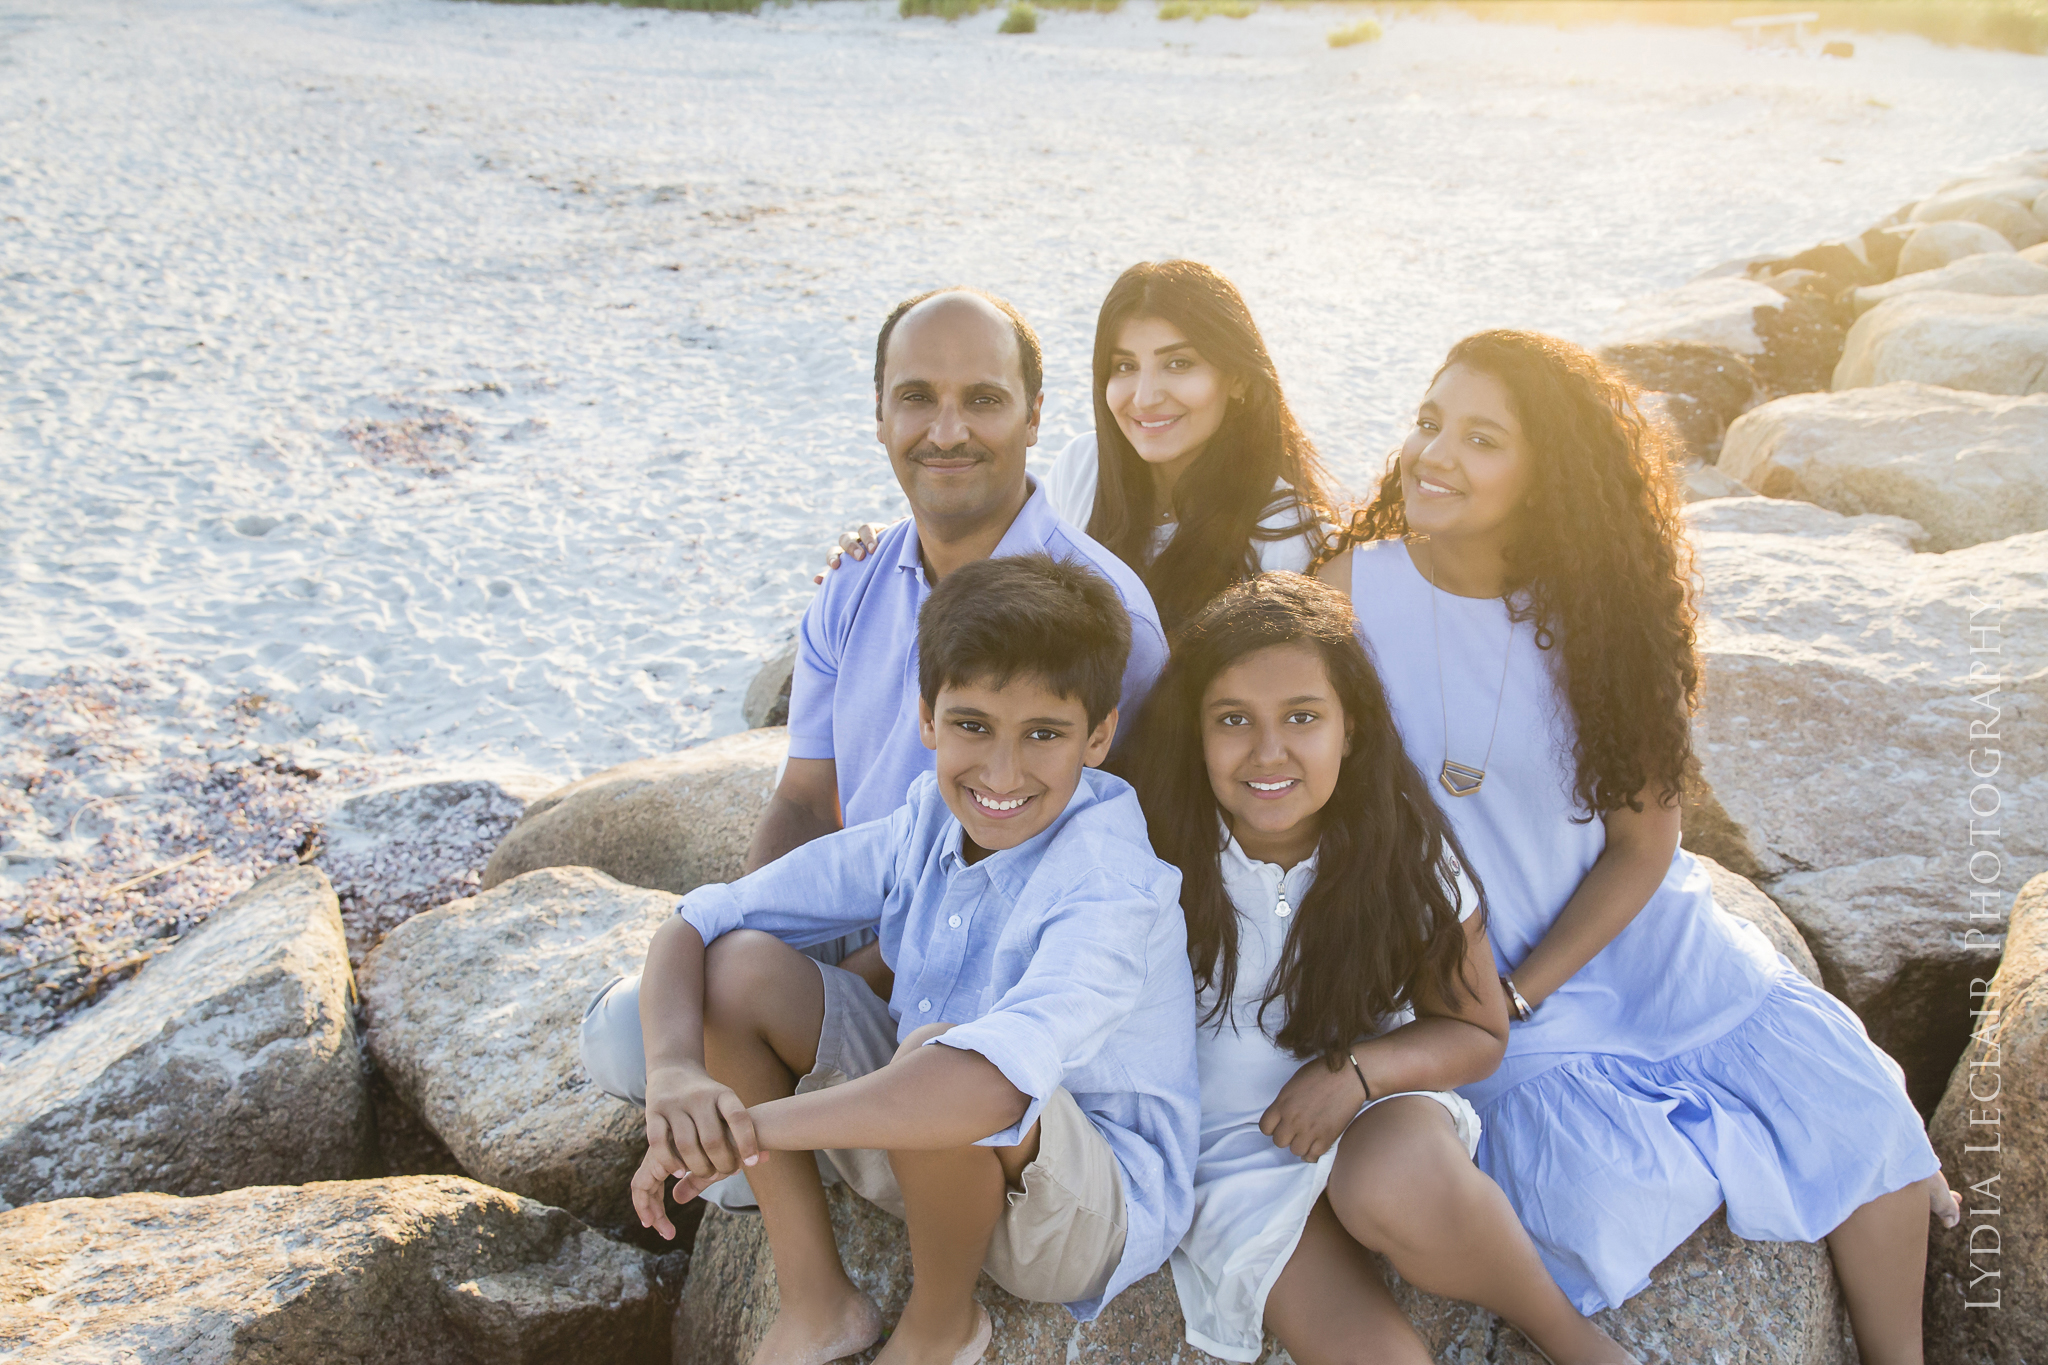 Osterville Dowses beach family photo on the rocks during sunset